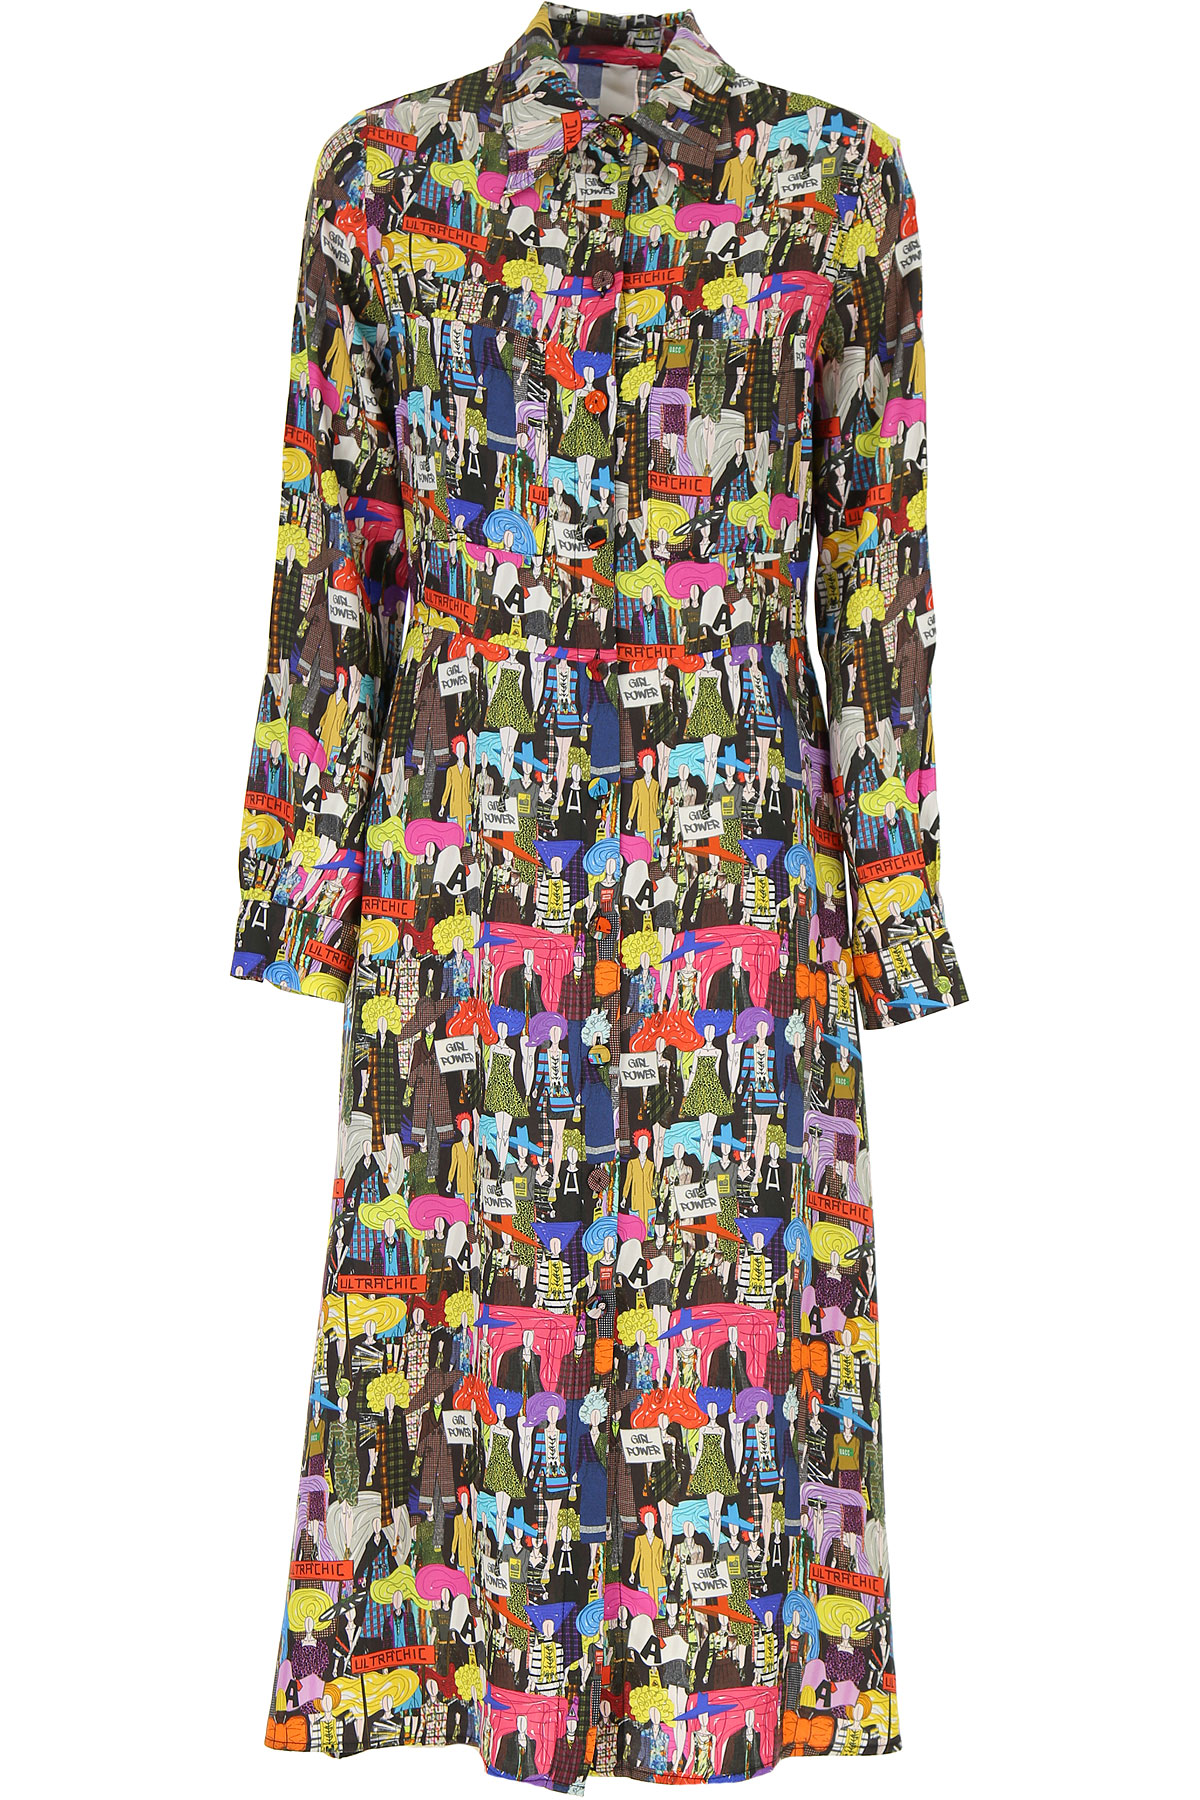 Ultrachic Dress for Women, Evening Cocktail Party On Sale, Multicolor, viscosa, 2019, 6 8